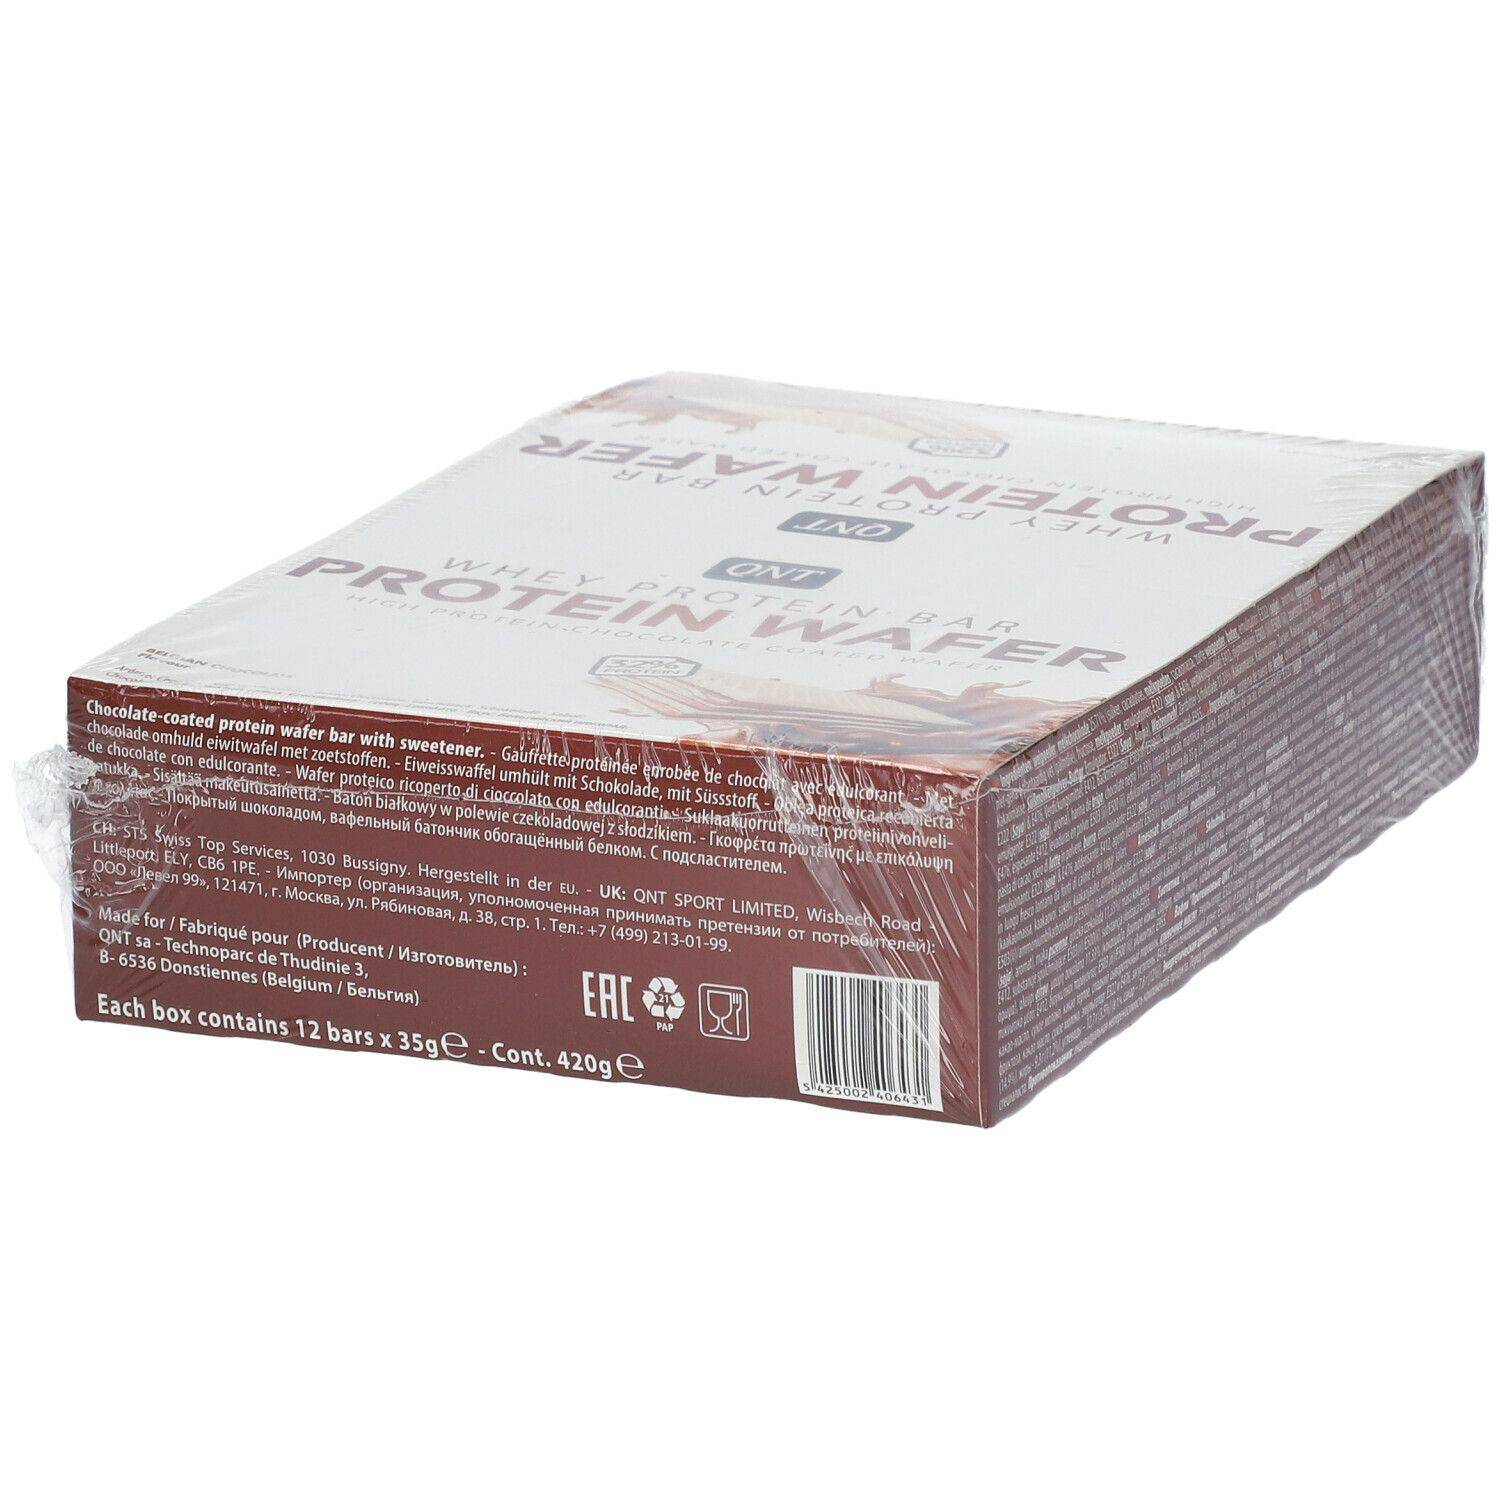 QNT Protein Wafer Barre Chocolat g Barre